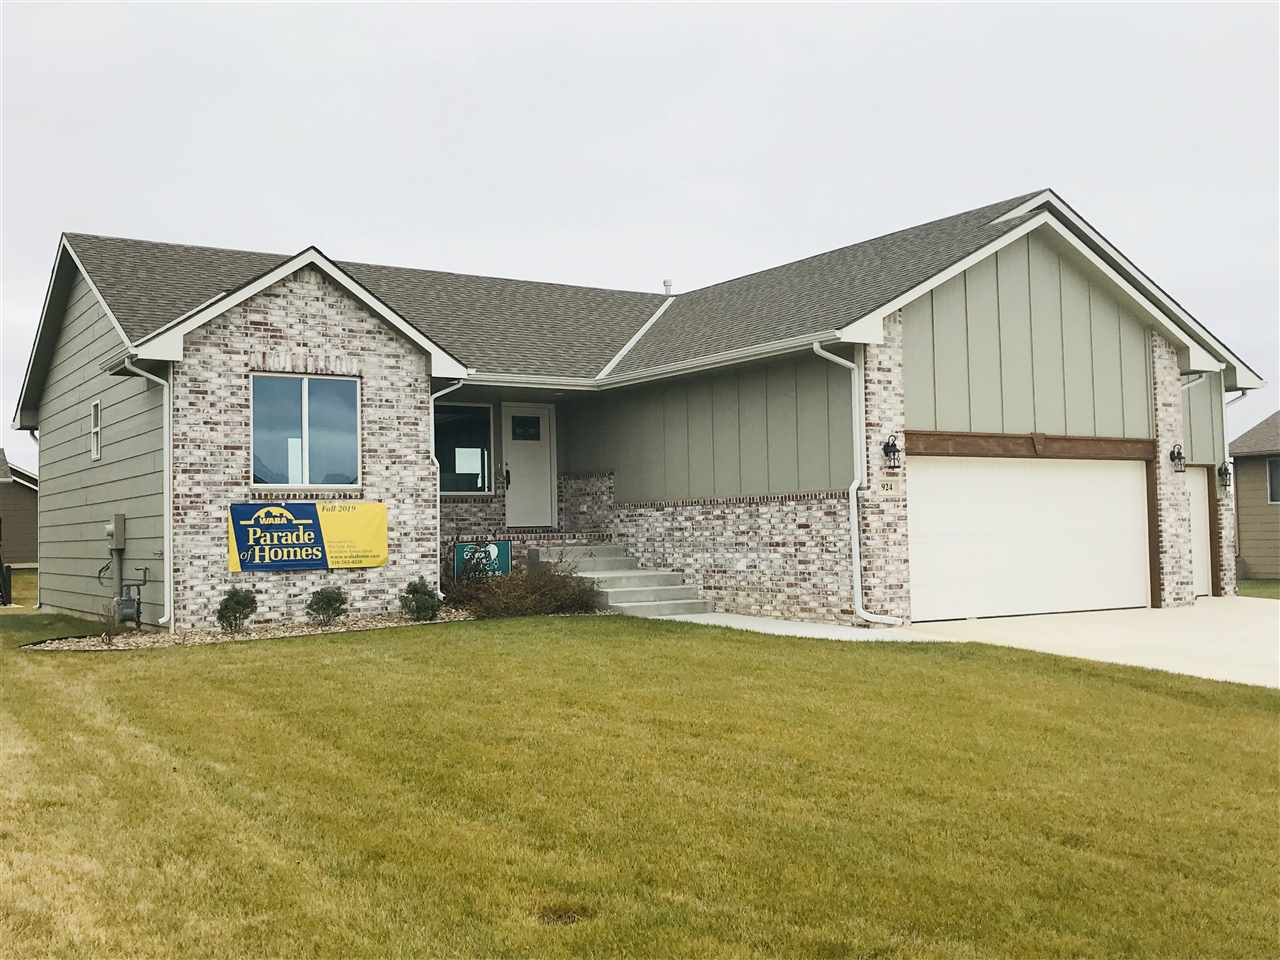 New Winter Split Bedroom Model by Comfort Homes!   Must See!!  Laminate Floors, Granite Counter tops, Partial Finished basement,  Tile Shower and Floor in Master Bath. Covered Deck!